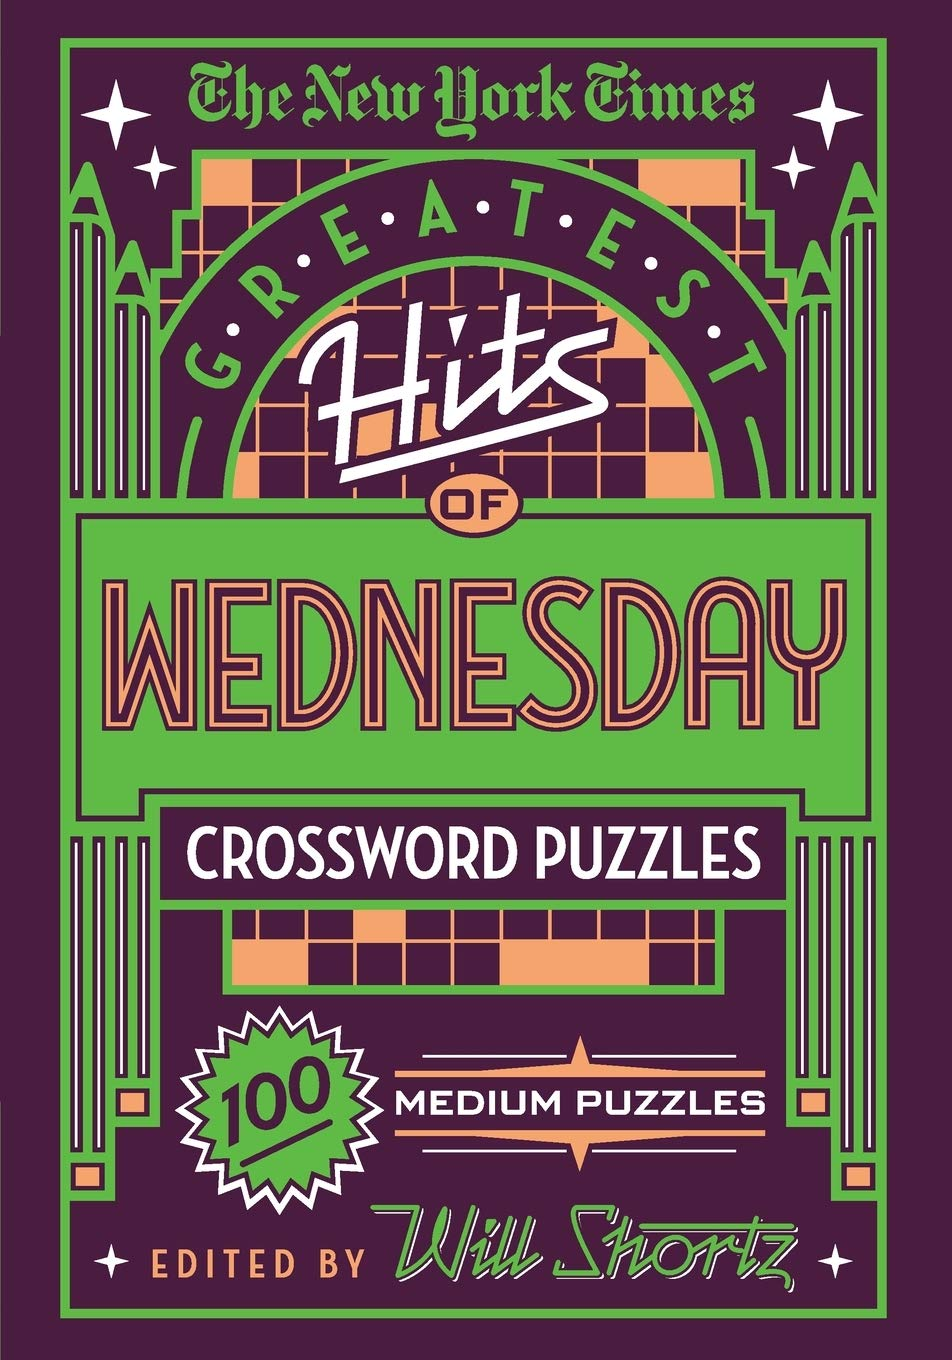 The New York Times Greatest Hits Of Wednesday Crossword Puzzles 100 Medium Puzzles The New York Times Shortz Will 9781250198365 Amazon Com Books